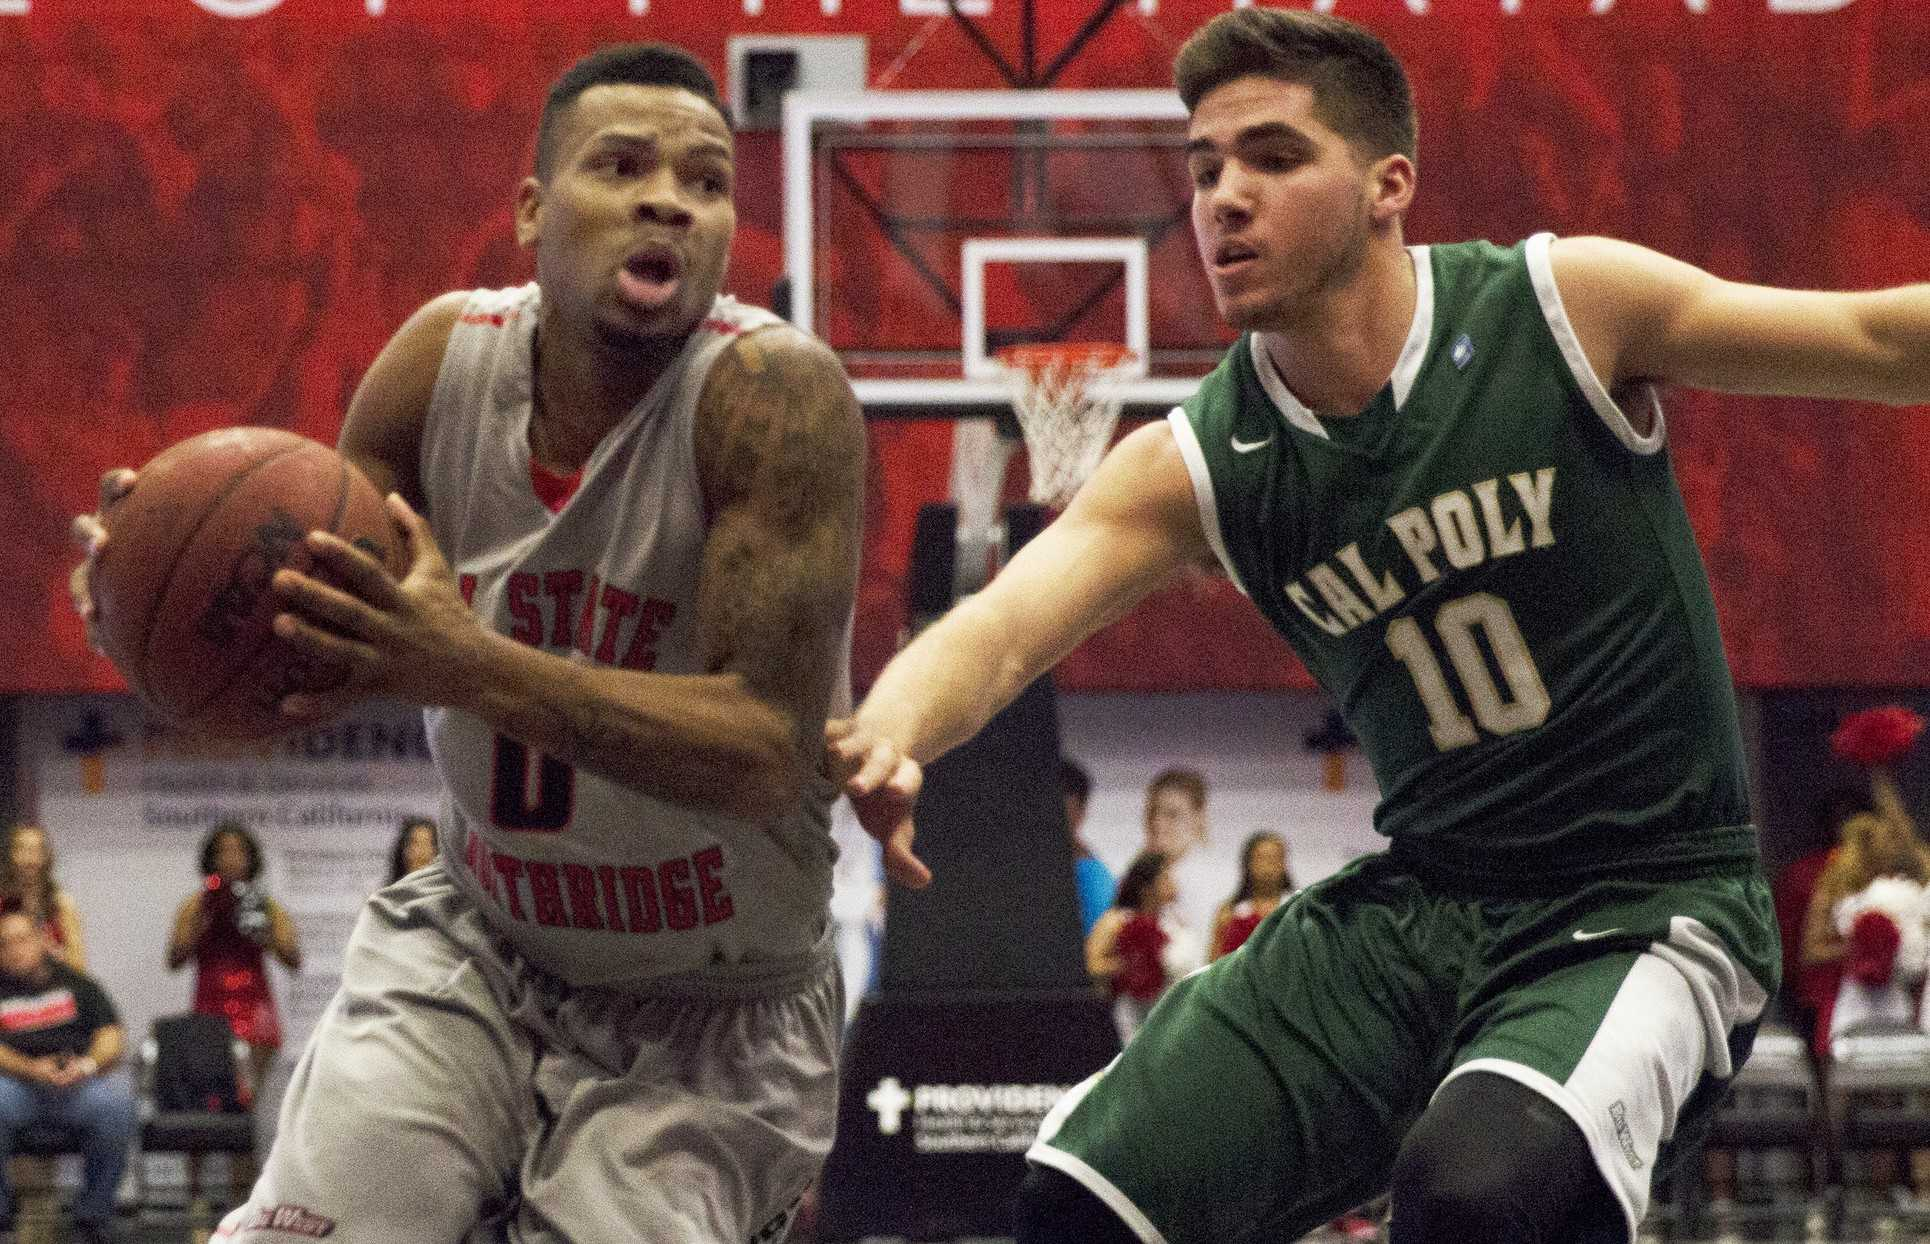 Men's Basketball: CSUN can't recover from slow start, lose to Cal Poly 70-63